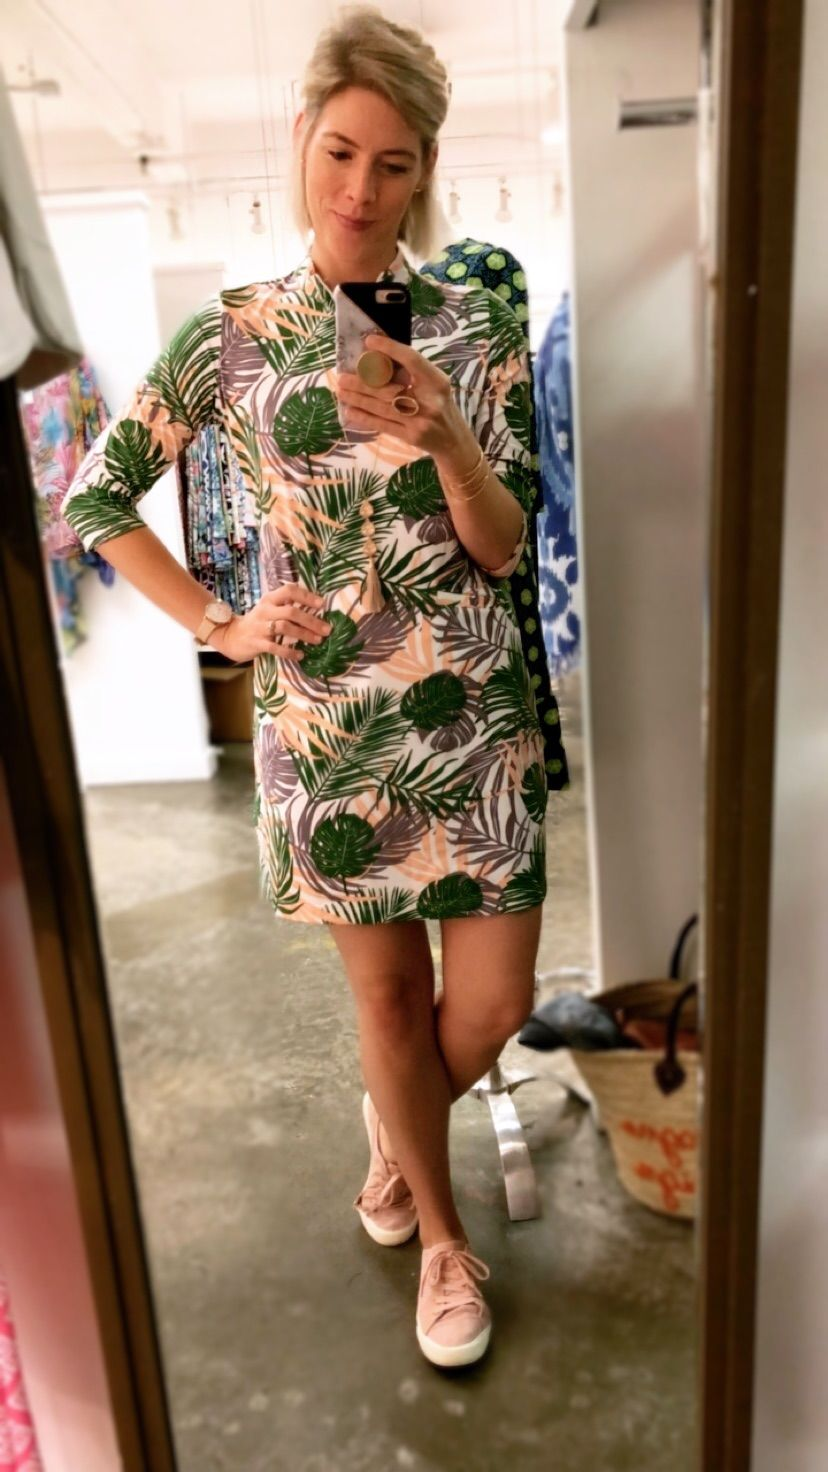 Doral Dress in Hideaway Apricot Green from The Katherine Way Resort